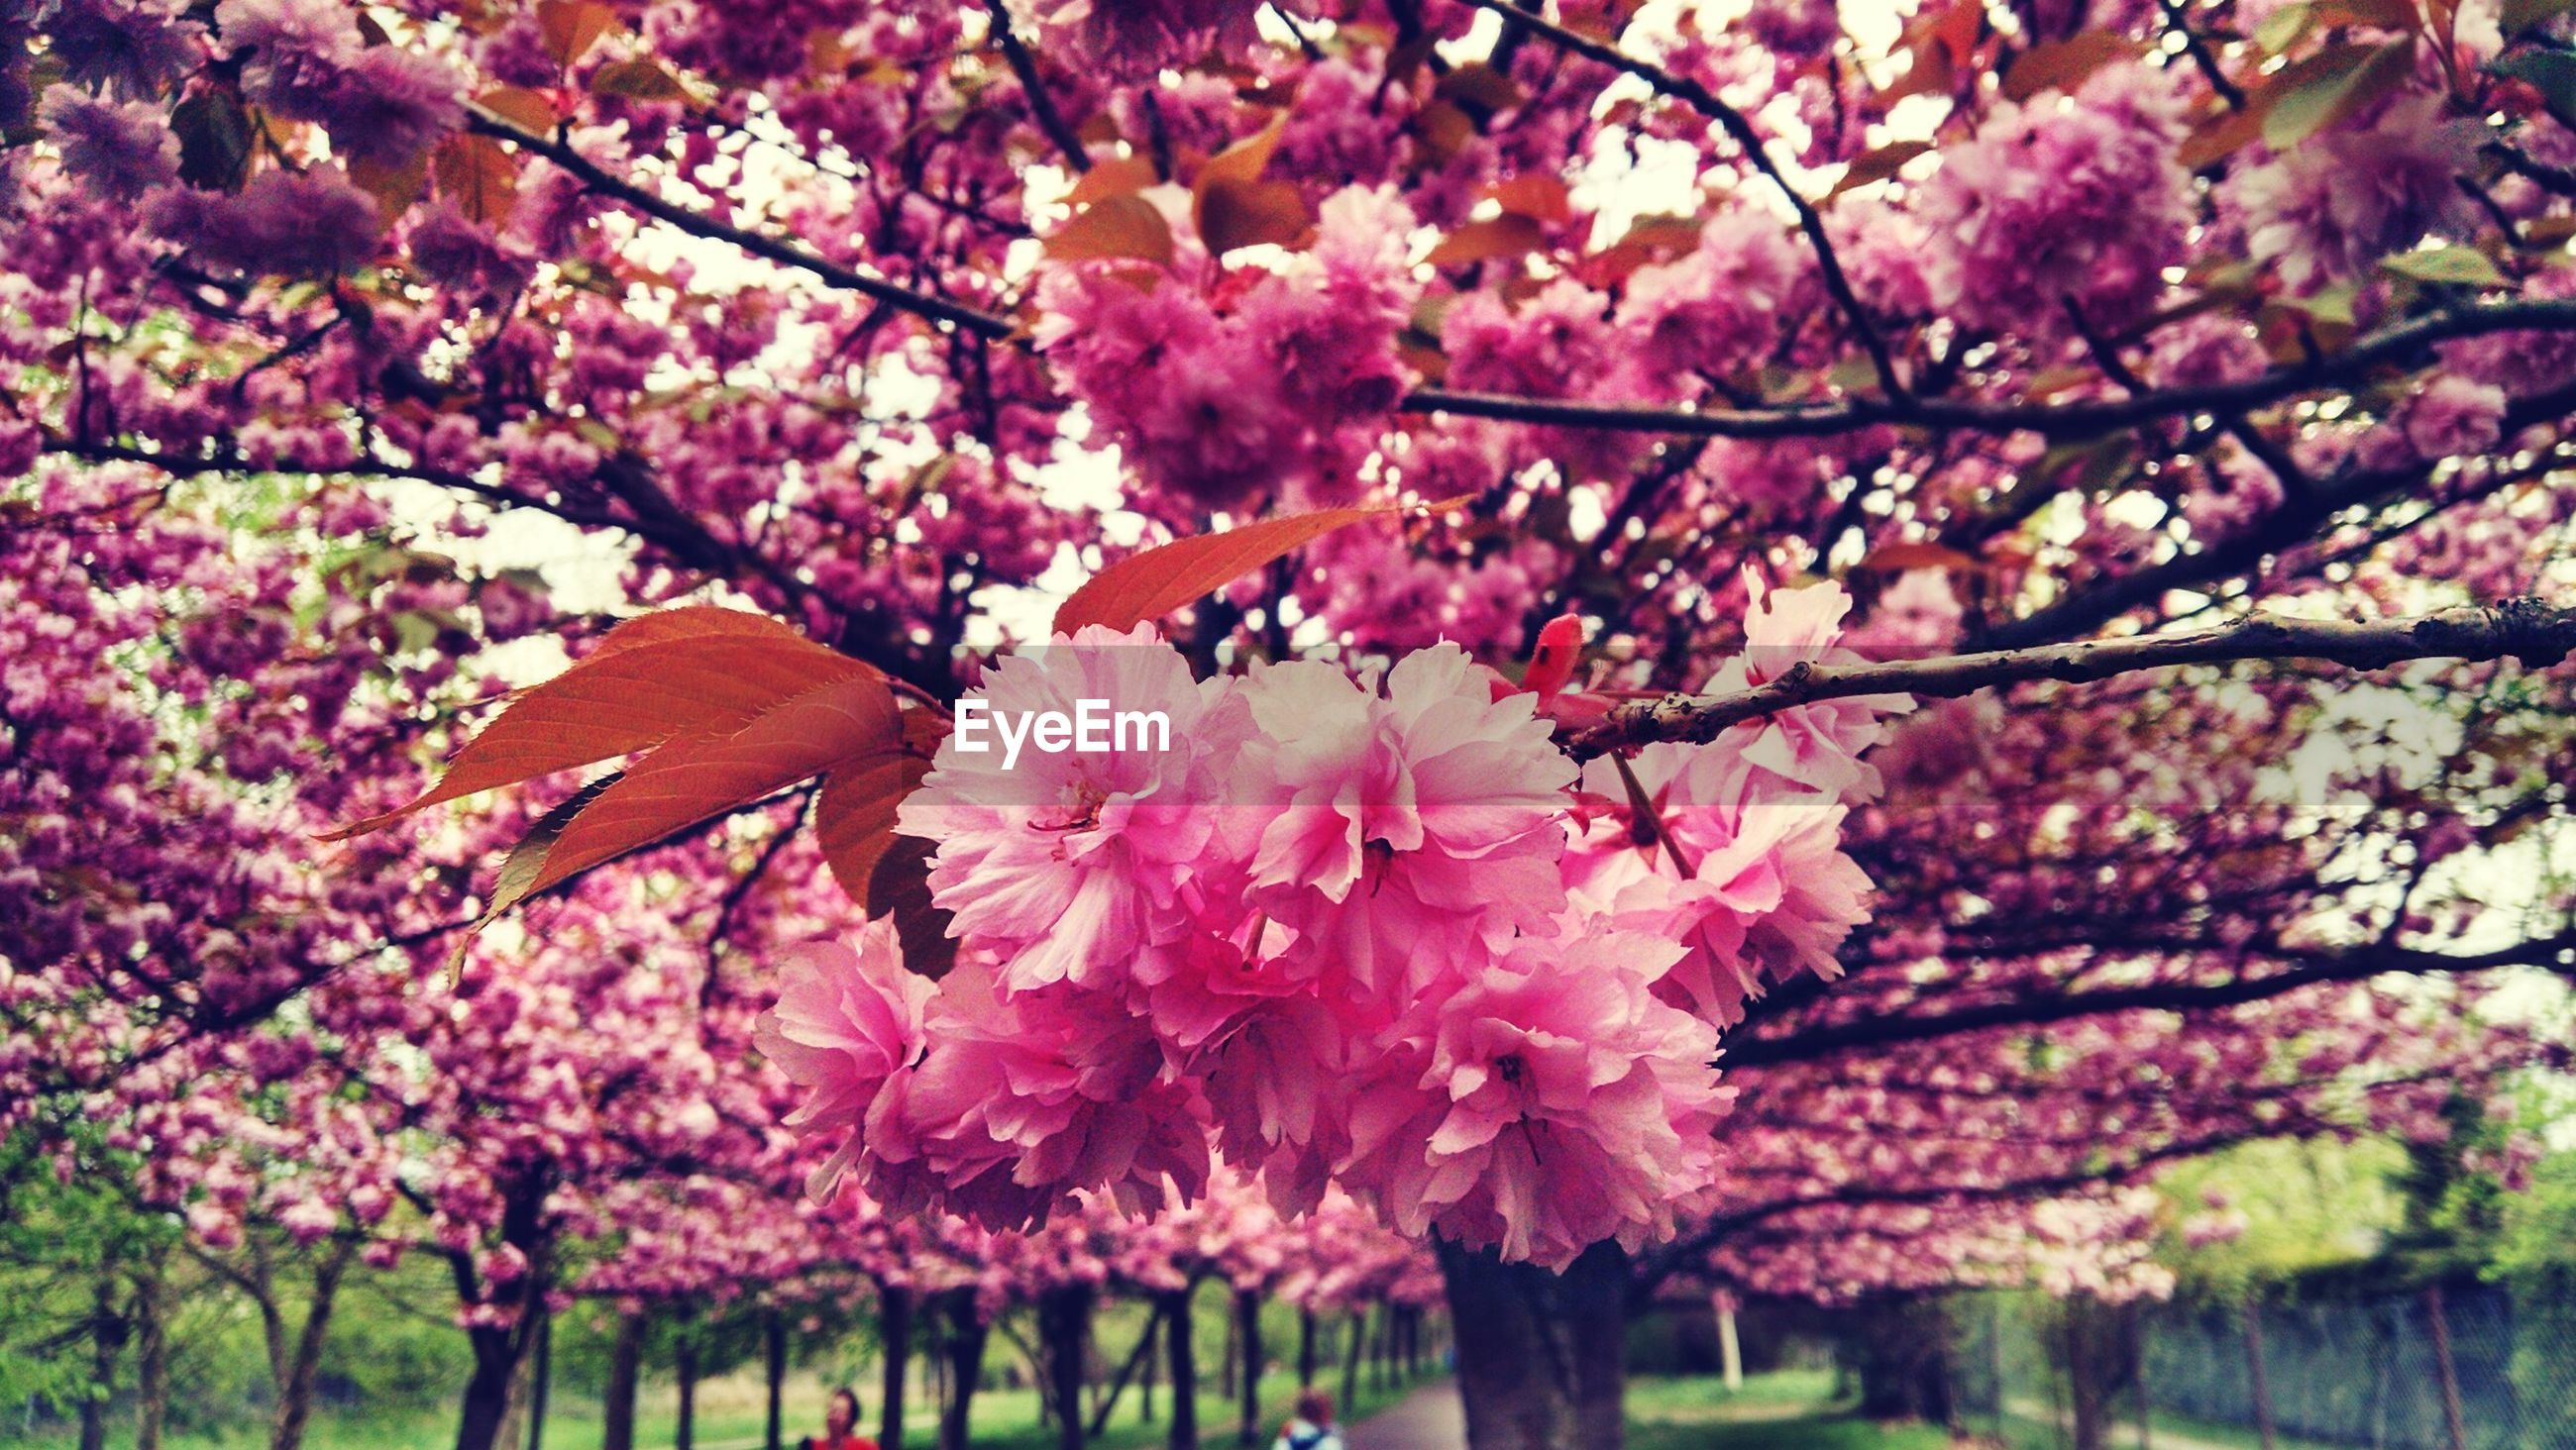 Branches with pink blossom